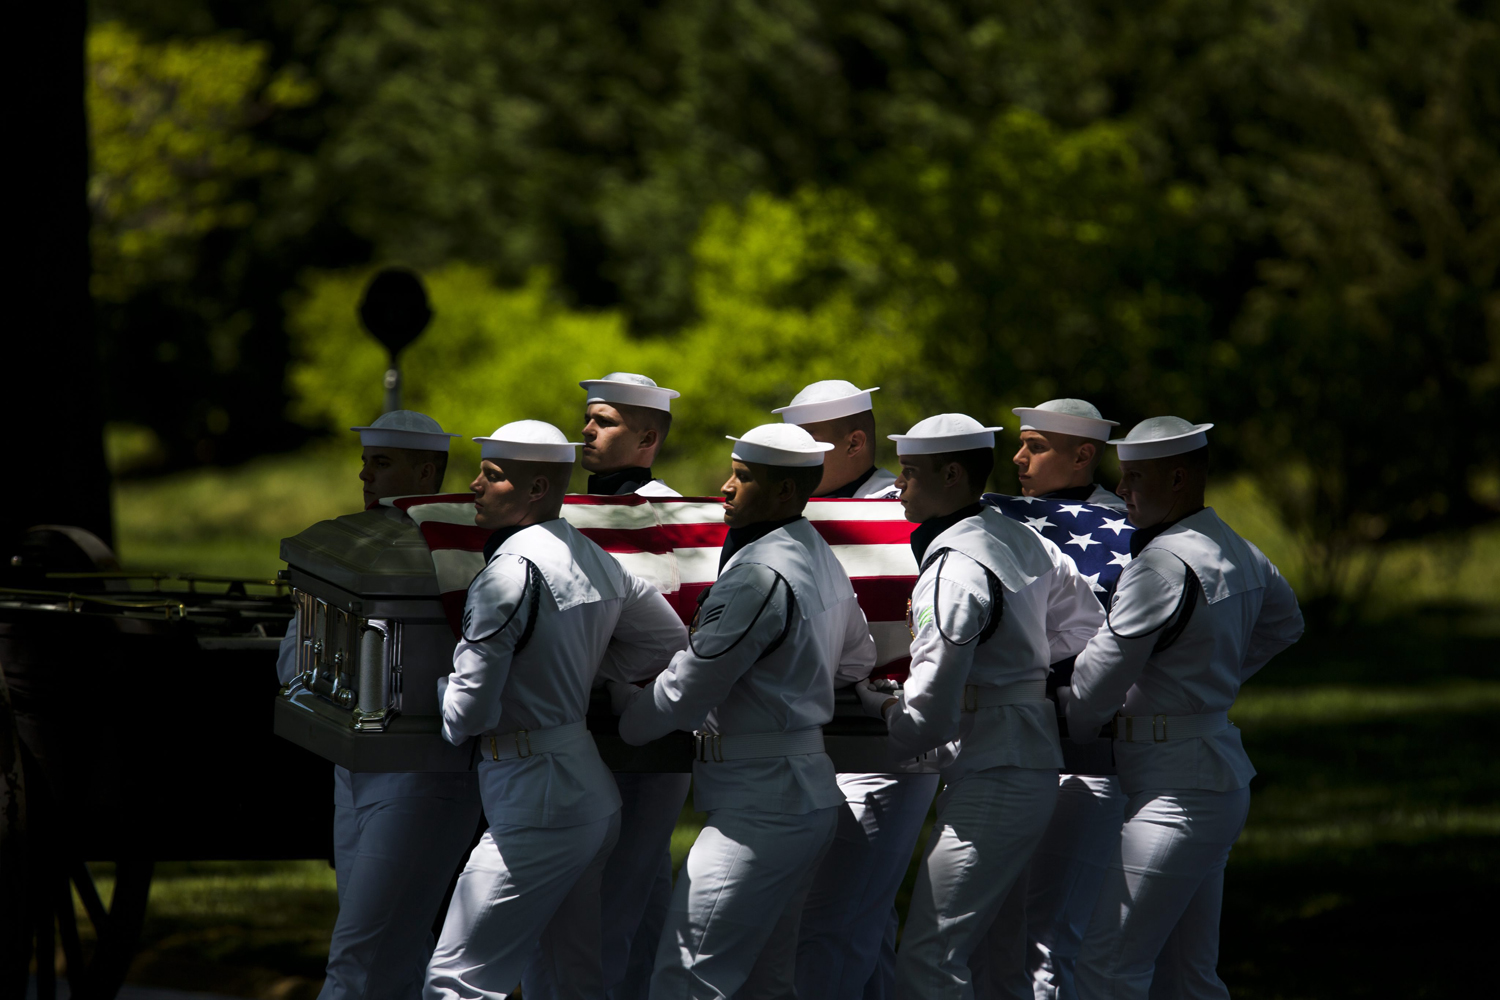 May 2, 2013. At a group burial service at Arlington National Cemetery, a U.S. Navy honor guard team carries the remains of four sailors, Lieutenant Dennis Peterson, Ensign Donald Frye, Aviation Antisubmarine Warfare Technician William Jackson, and Aviation Antisubmarine Warfare Technician Donald McGranein, all missing since the Vietnam War, in Arlington, Virginia.